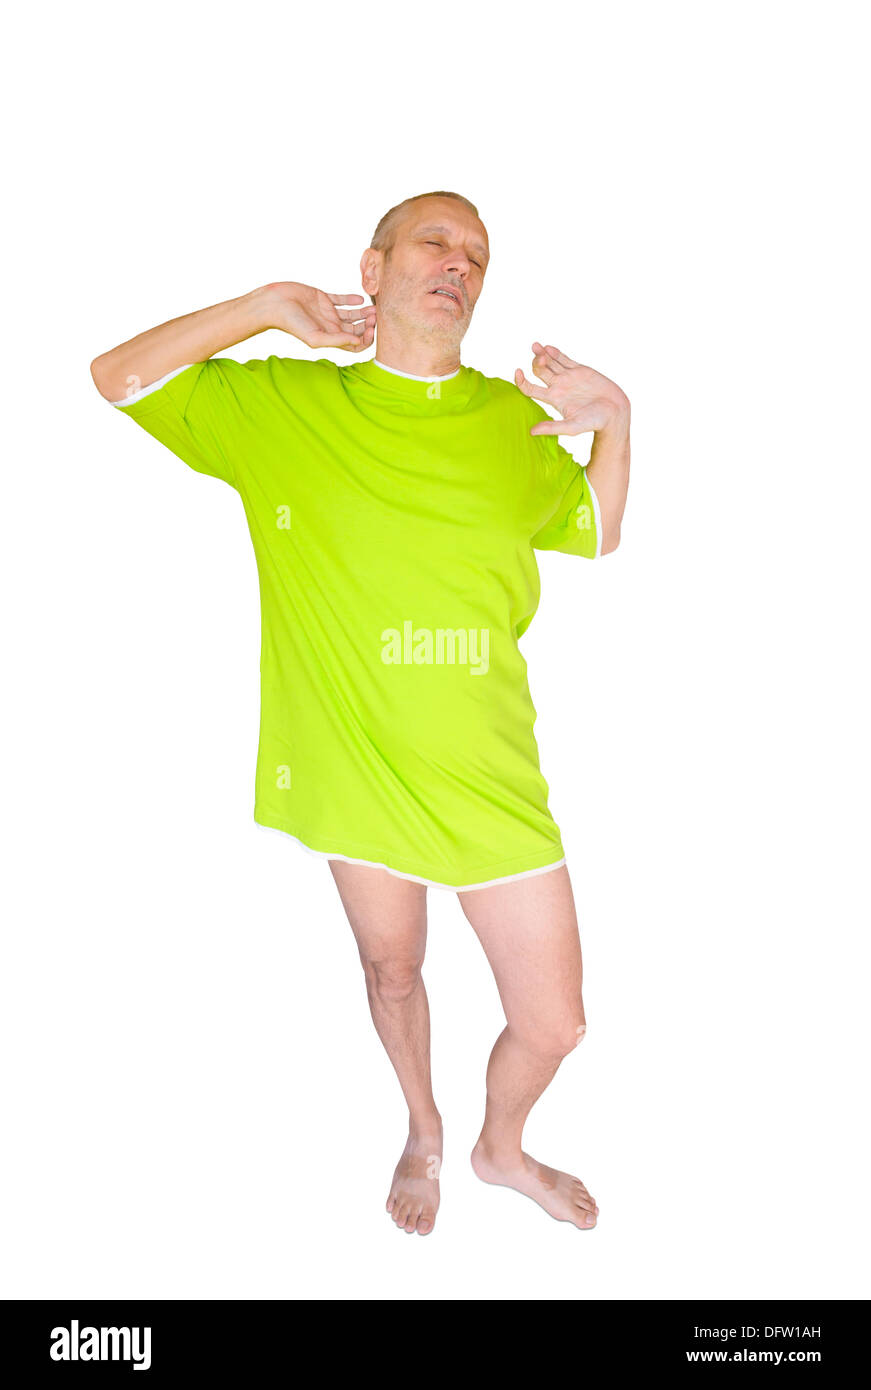 Man in green nightdress, waking up and yawning, on white background - Stock Image